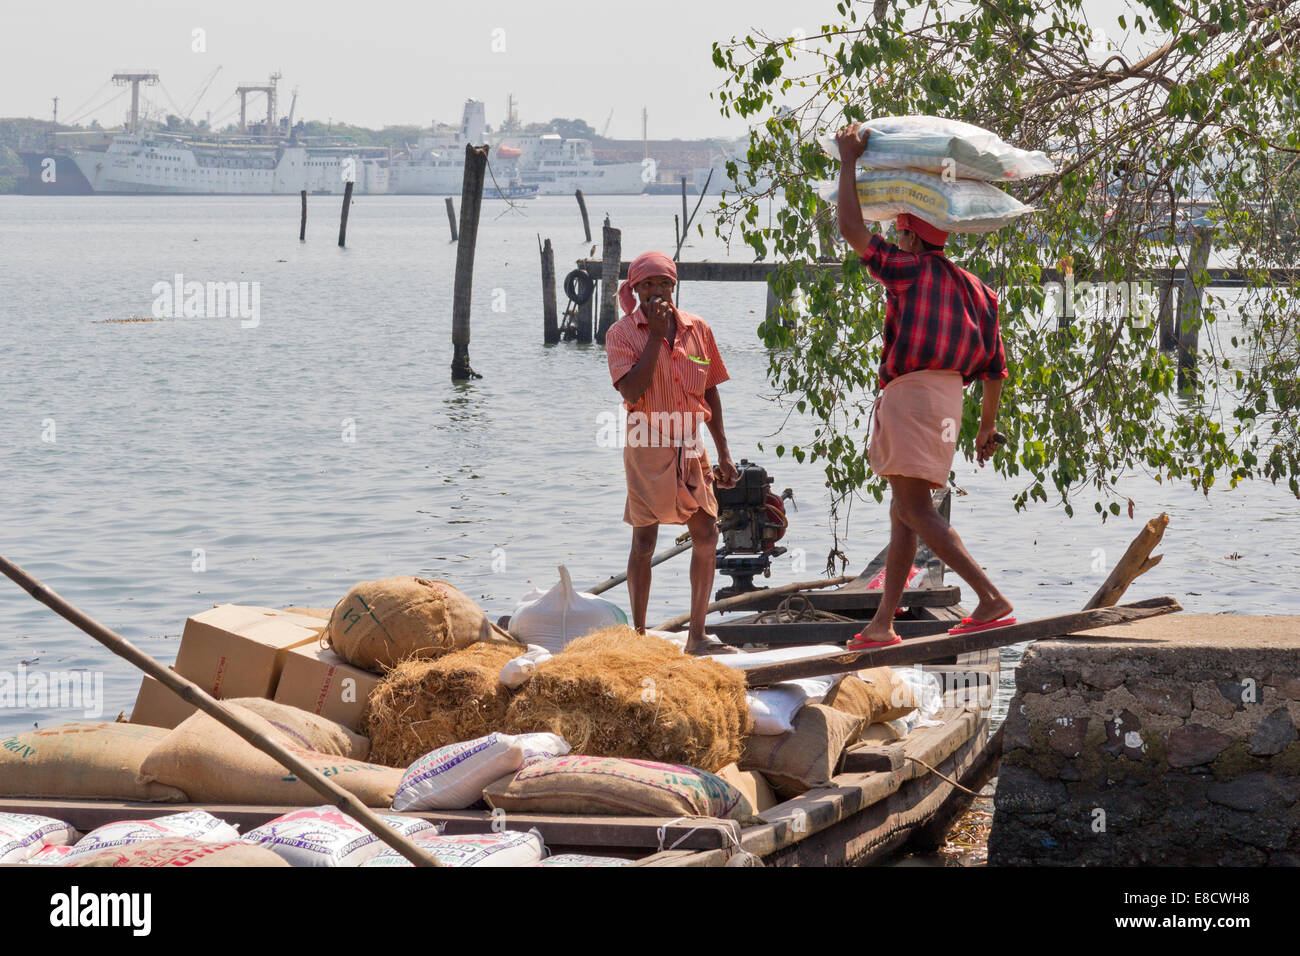 TWO MEN LOADING AN OLD WOODEN BOAT WITH HEAVY SACKS OF FOOD IN PORT KOCHI OR COCHIN INDIA - Stock Image